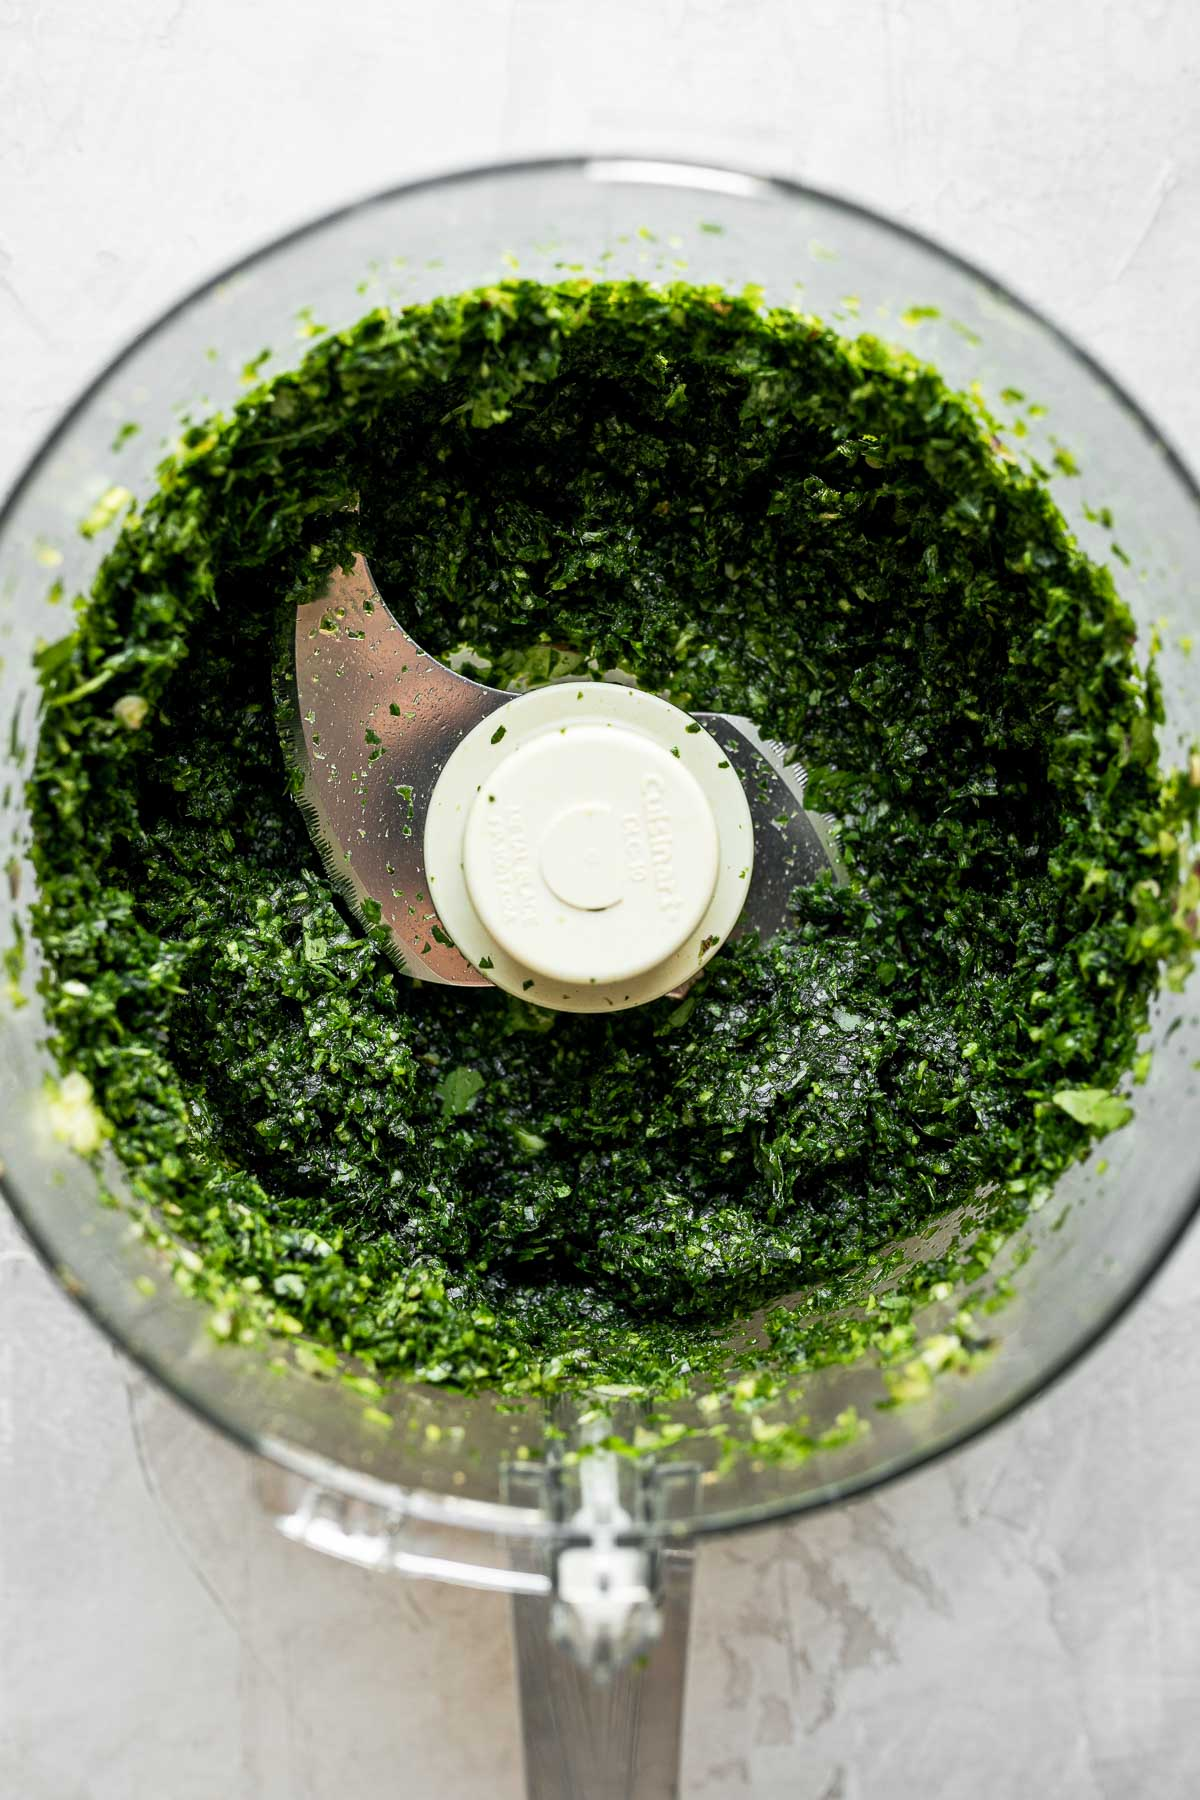 Onion, lemon zest, jalapeño, & fresh herbs finely chopped in a food processor. The food processor bowl sits on top of a white textured surface.